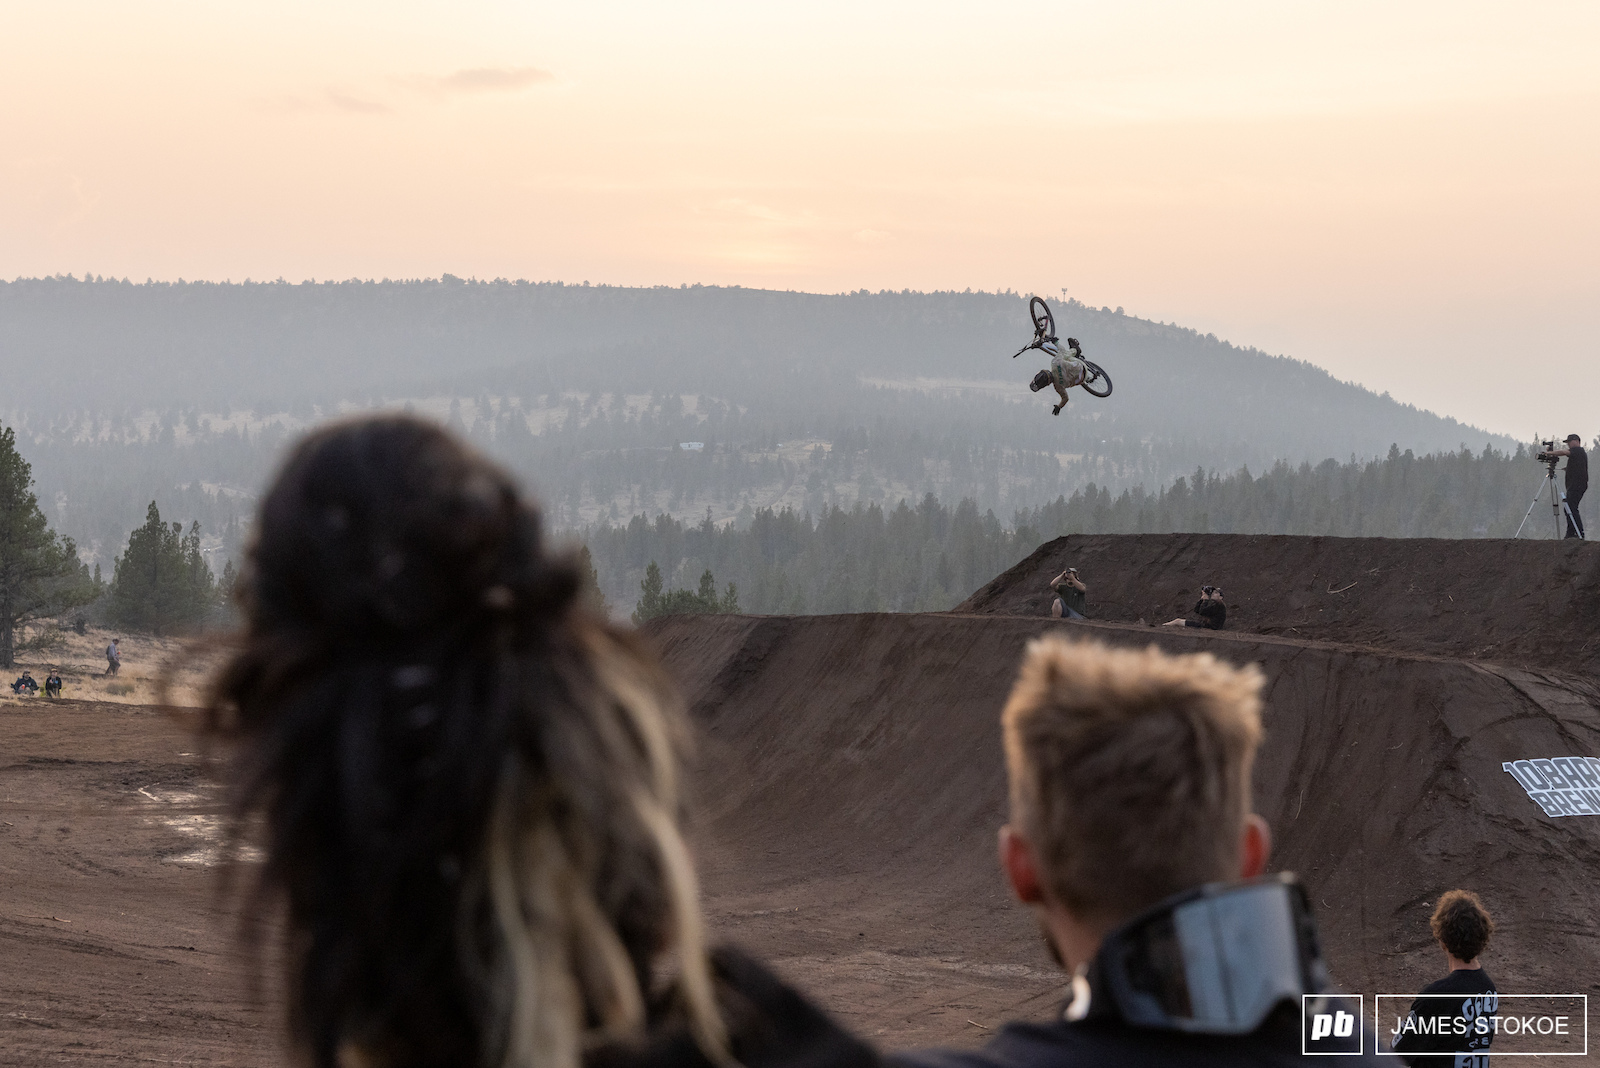 Dylan is seen here doing a backflip but instead of just backflipping on the gargantuan feature he figured dropping a hand off was a good idea. He landed this perfectly.